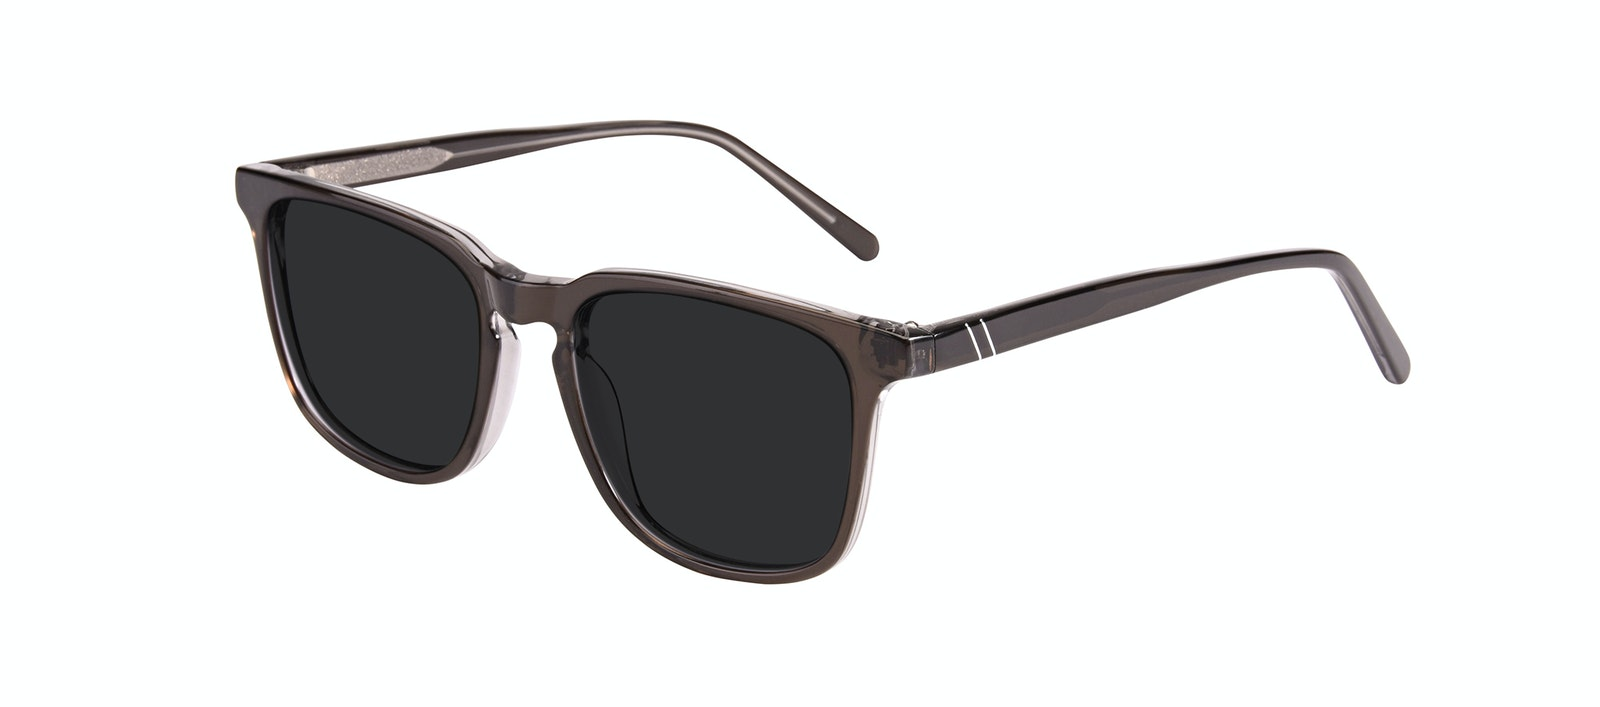 Affordable Fashion Glasses Rectangle Square Sunglasses Men Peak Black Ice Tilt